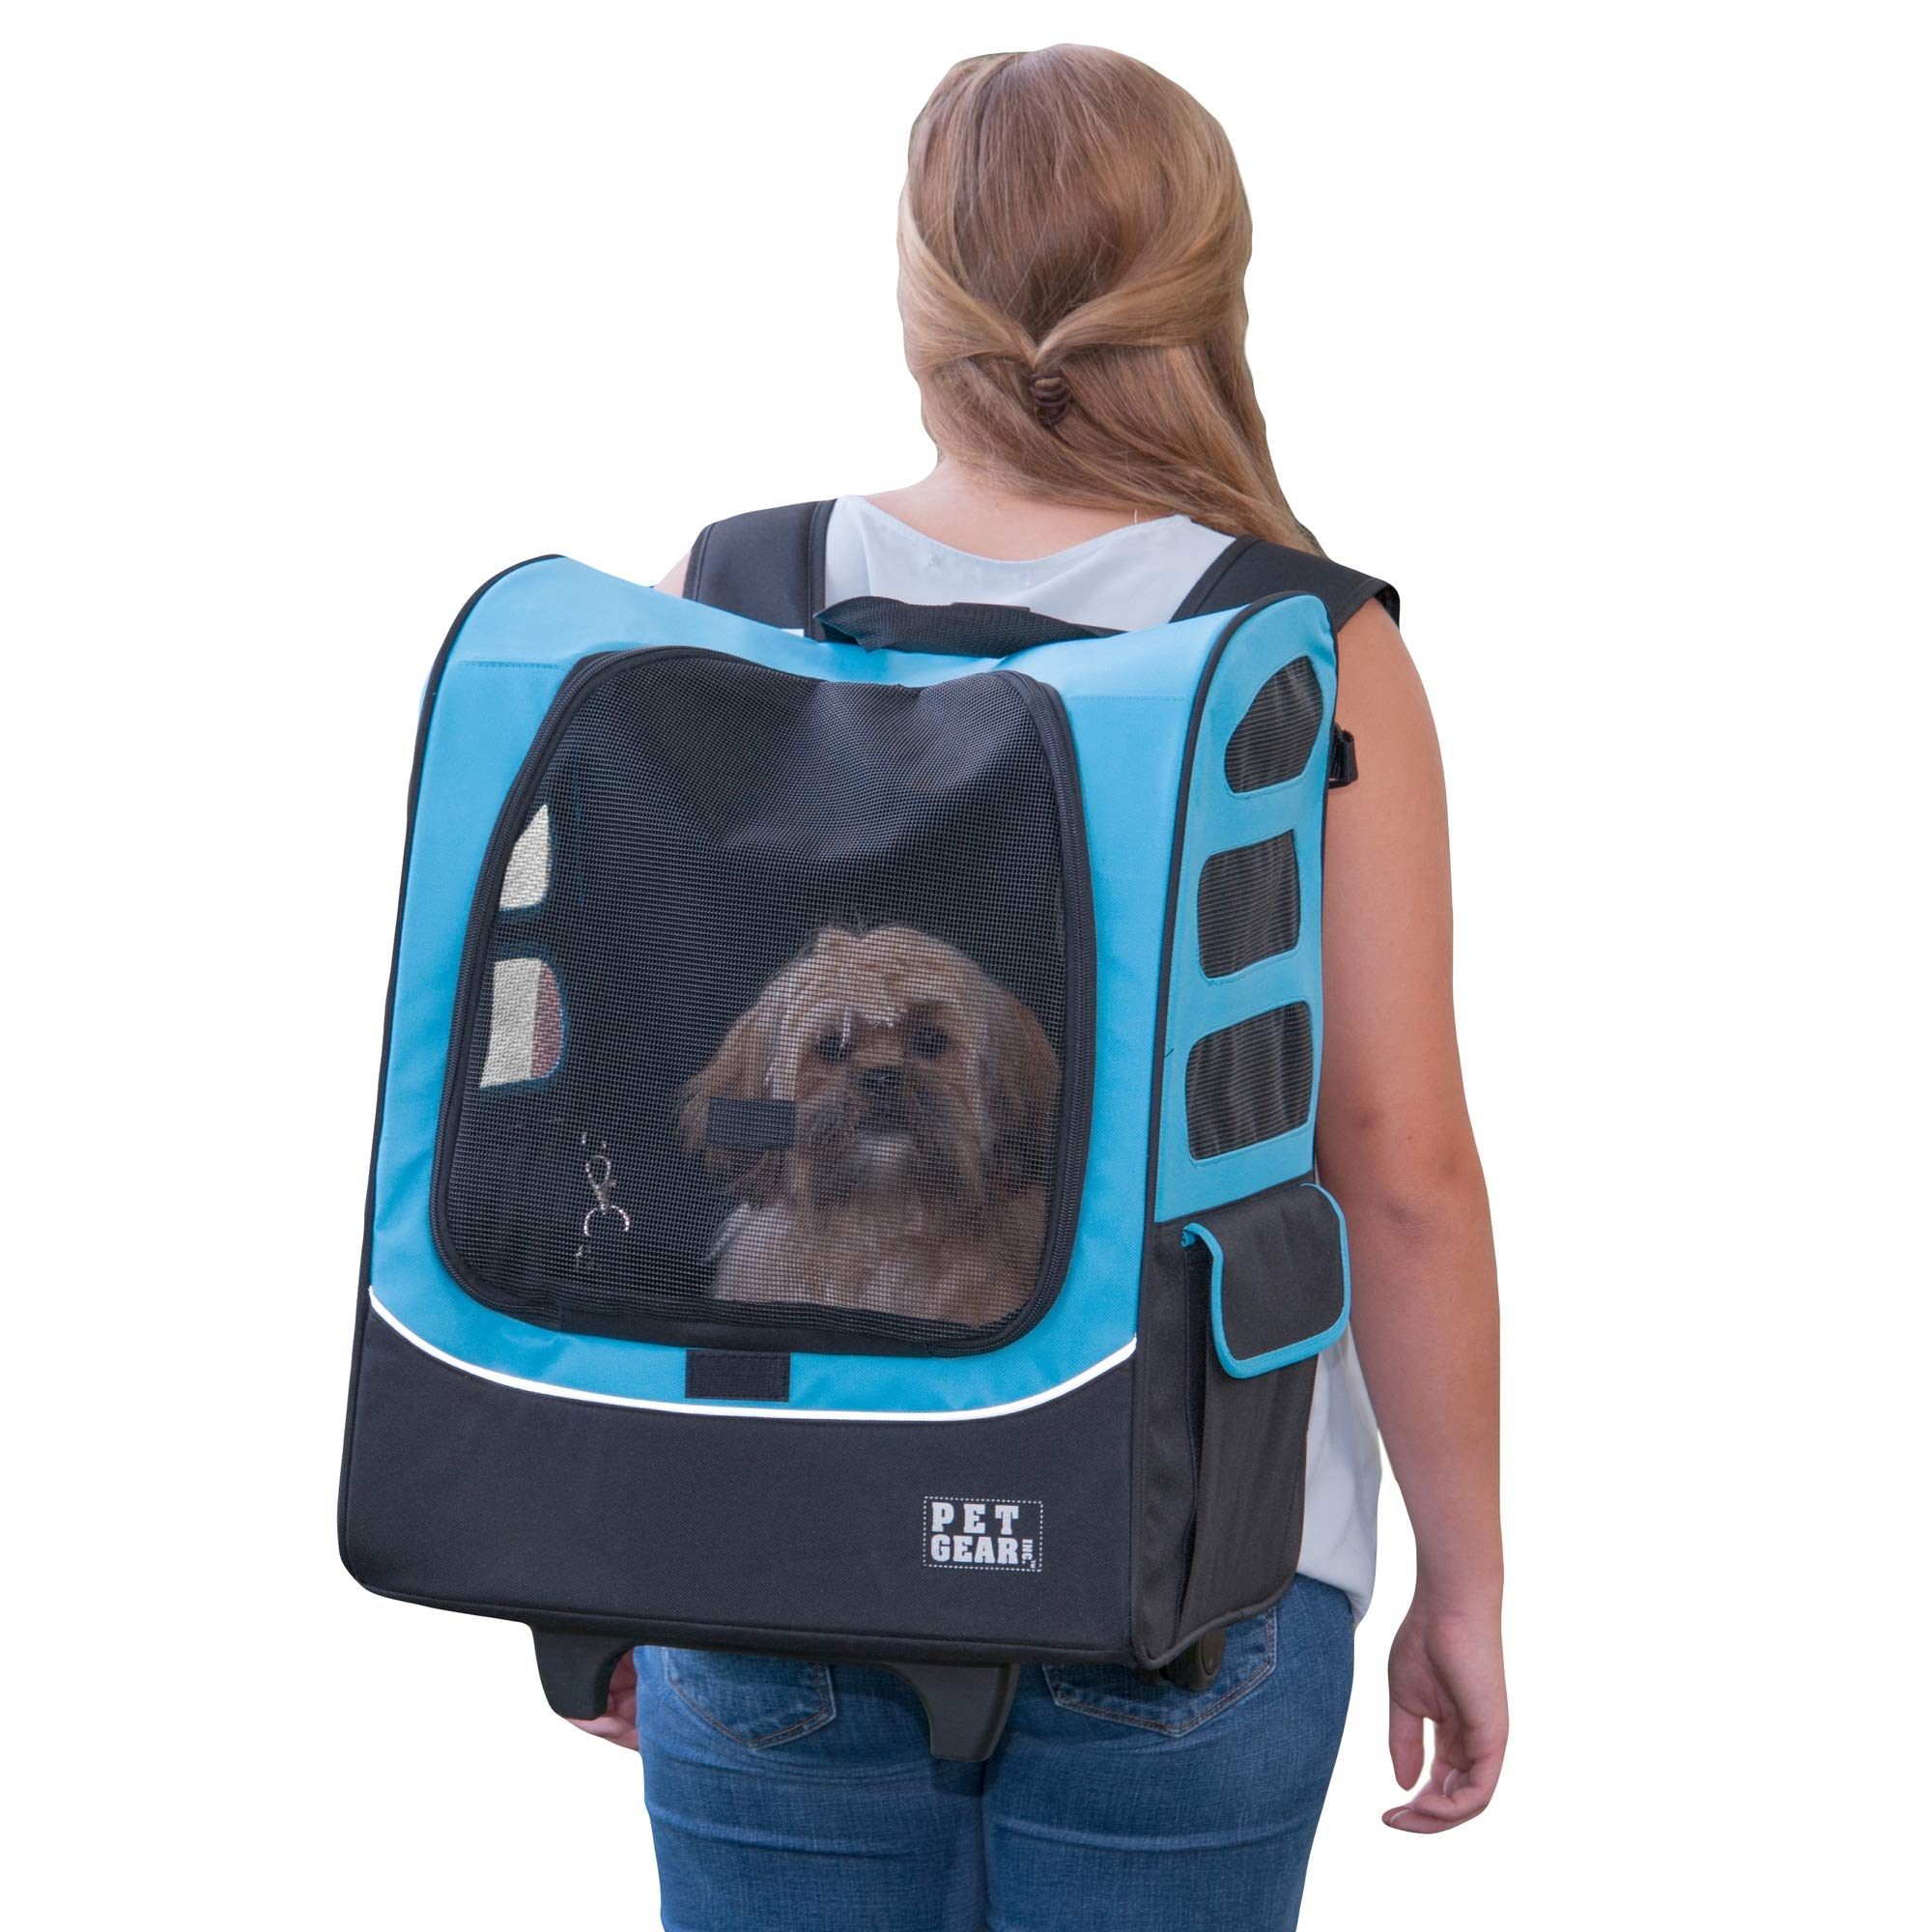 Pet Gear I-GO2 Roller Backpack, Travel Carrier, Car Seat for Cats/Dogs, Mesh Ventilation, Included Tether, Telescoping Handle, Storage Pouch, Extra Large Plus Traveler, Ocean Blue by Pet Gear